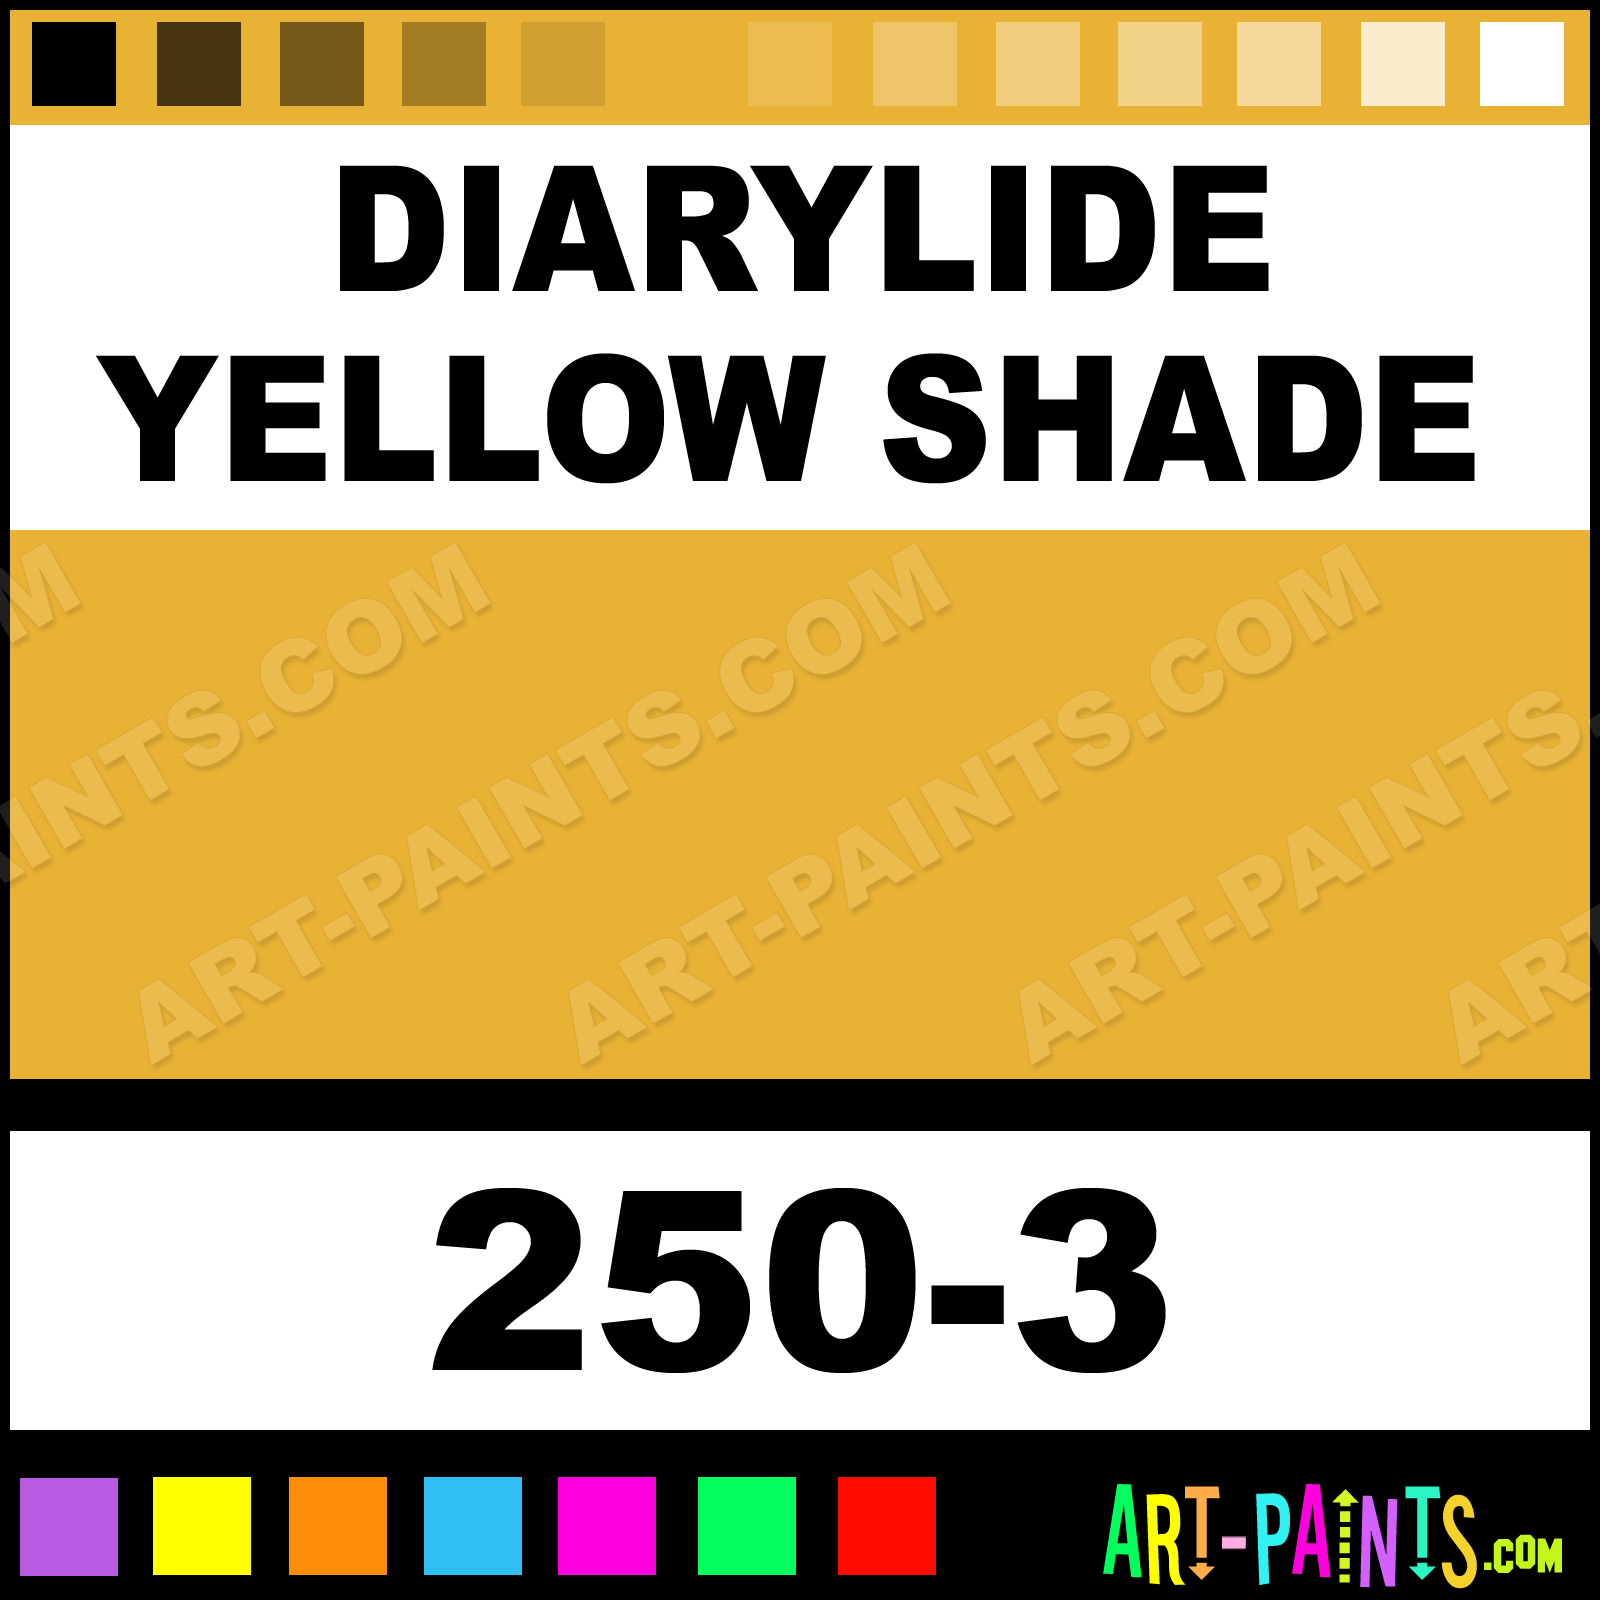 diarylide yellow shade soft pastel paints - 250-3 - diarylide